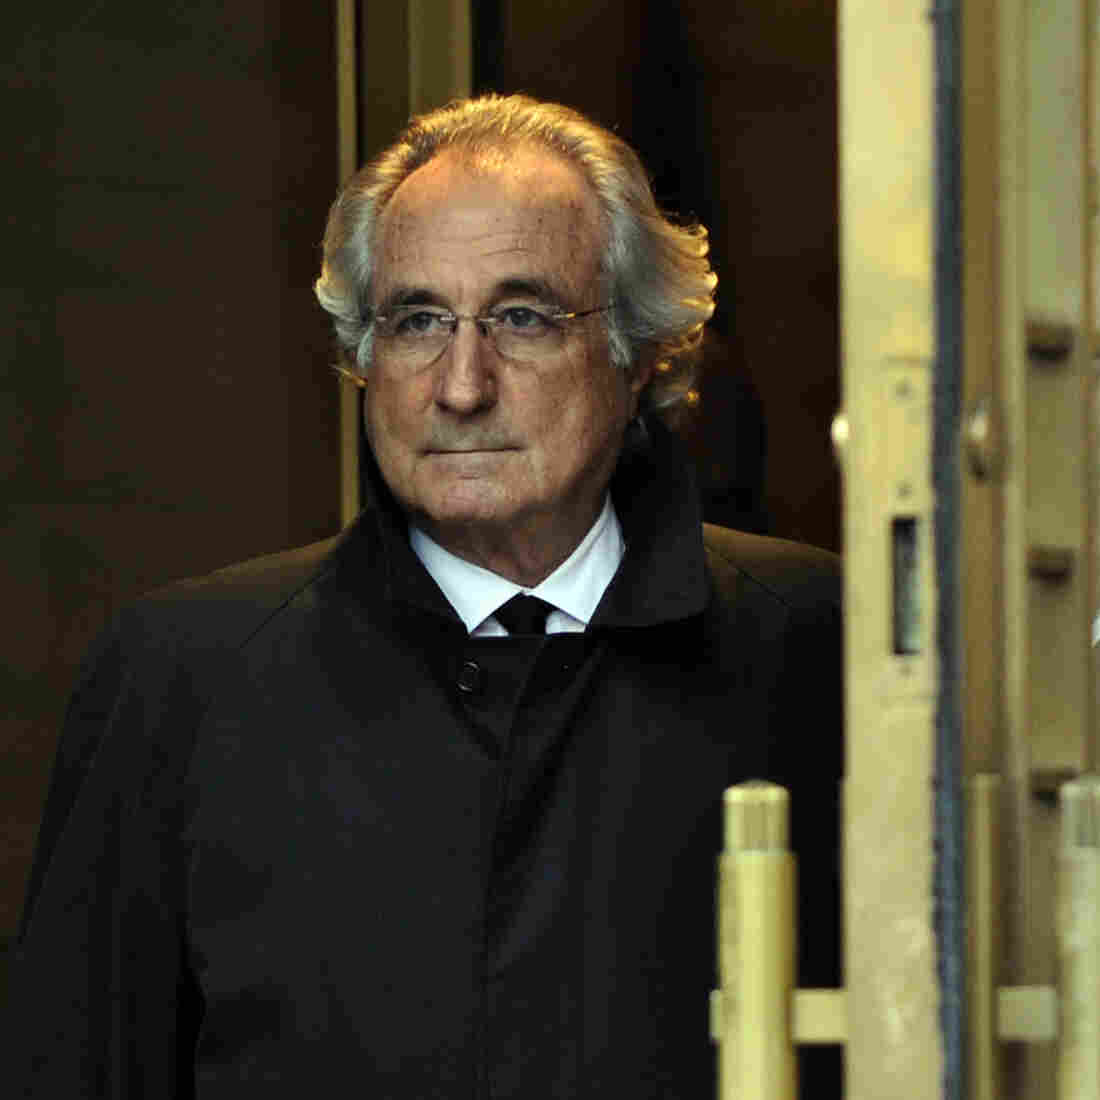 JPMorgan Chase To Pay $1.7 Billion To Madoff Victims